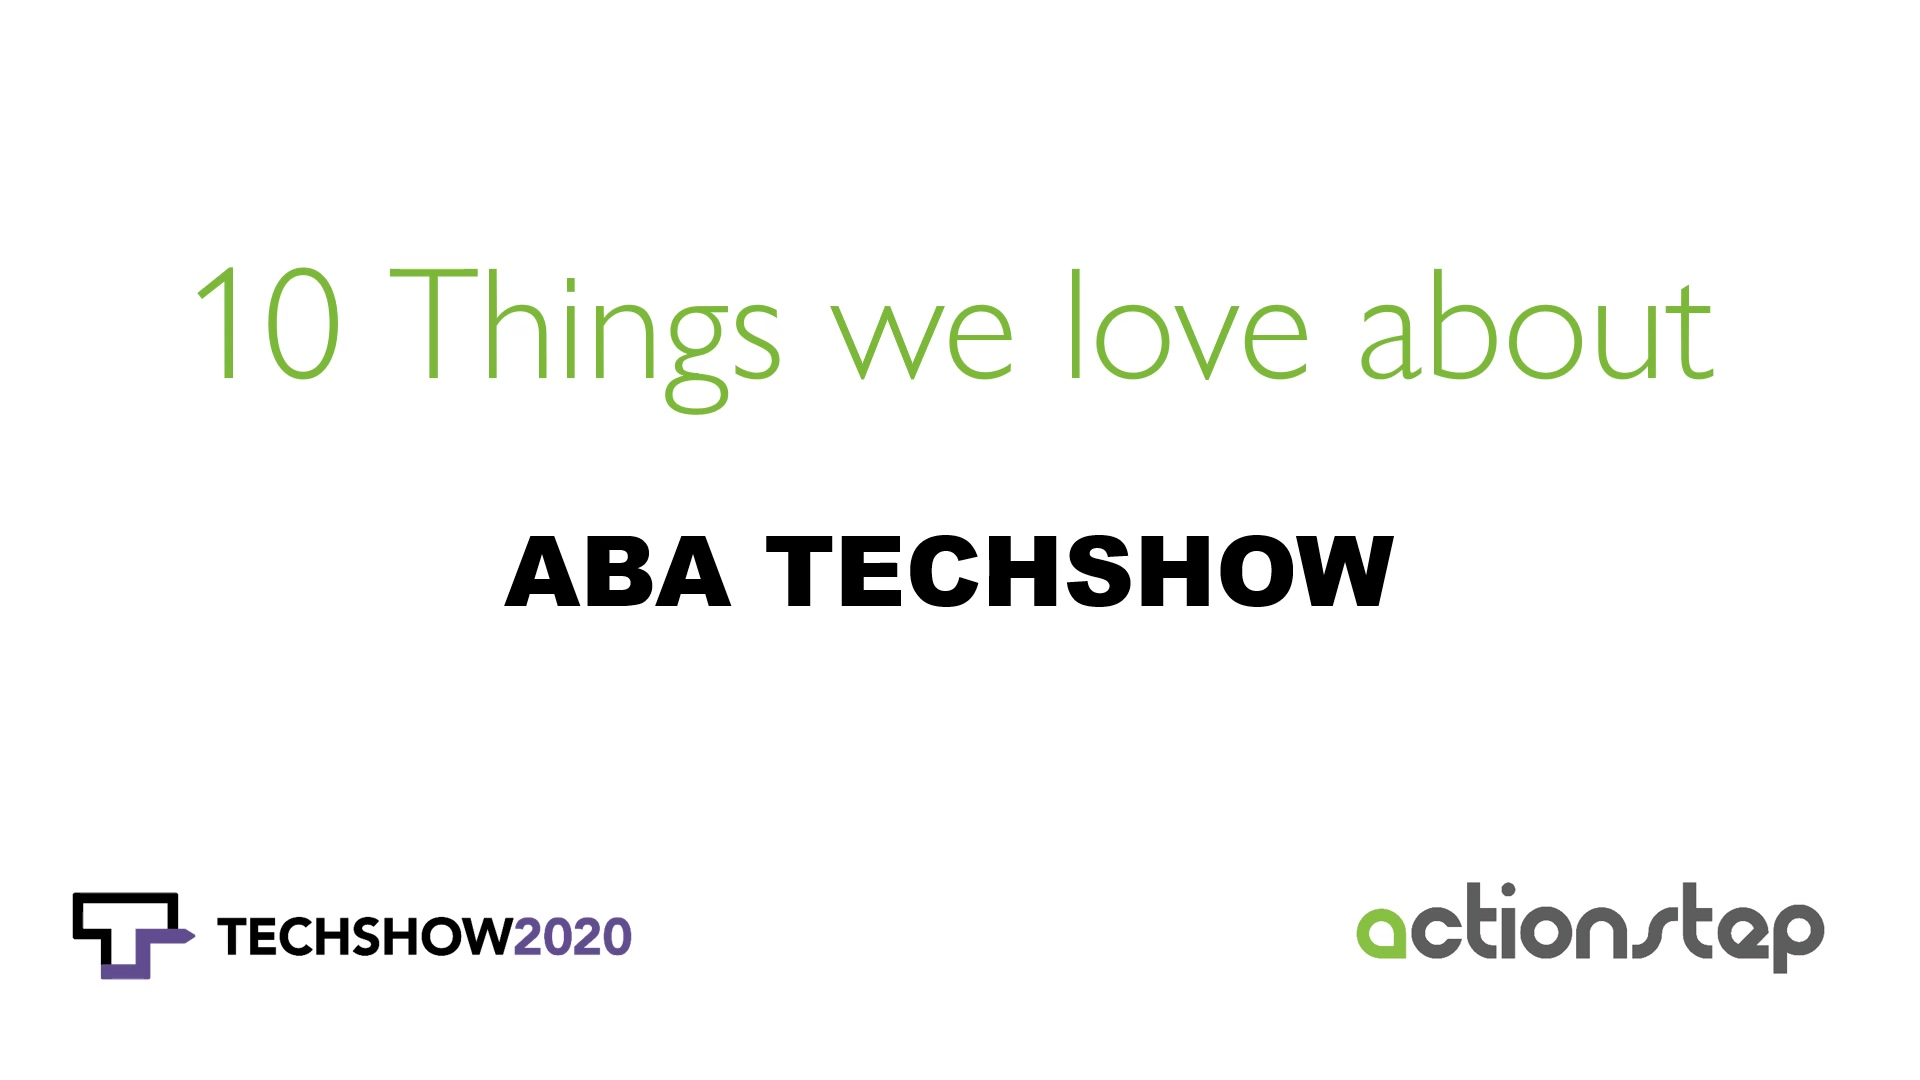 Things we love about the ABA TECHSHOW (002)